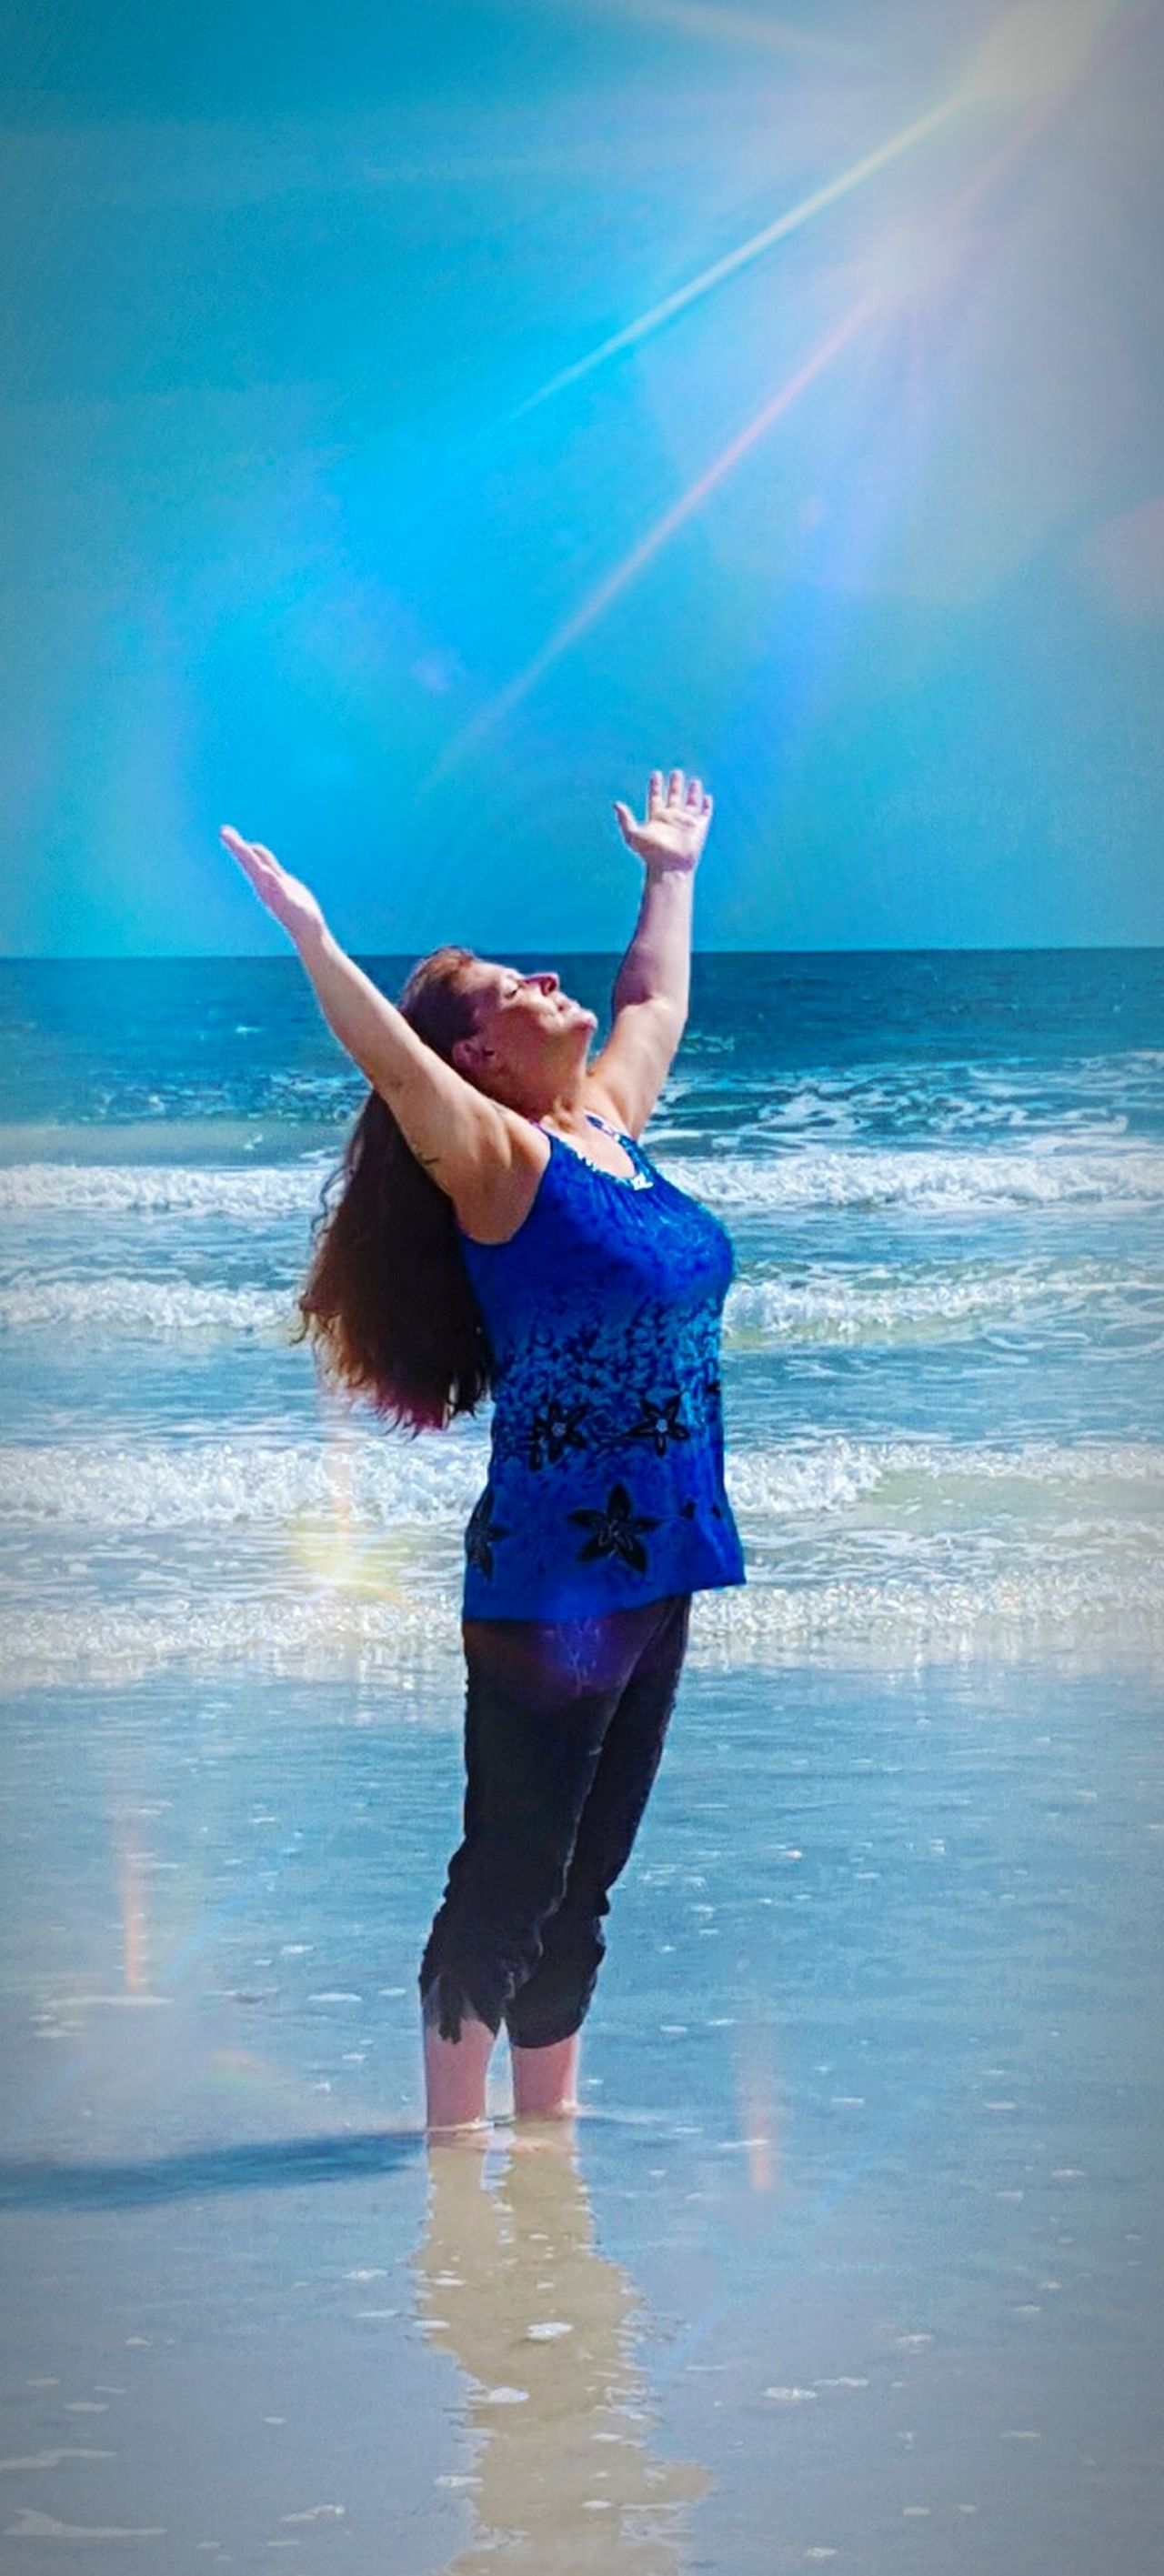 Praising The Lord Water Beach Horizon Over Water Sunlight Lens Flare Tranquil Scene Young Adult Full Length Sunbeam Summer Sun Sea Blue Vacations Sunny Long Hair Scenics Shore Sun On The Water Ocean Photography St. Augistine FL St. Augustine Beach Fl Au